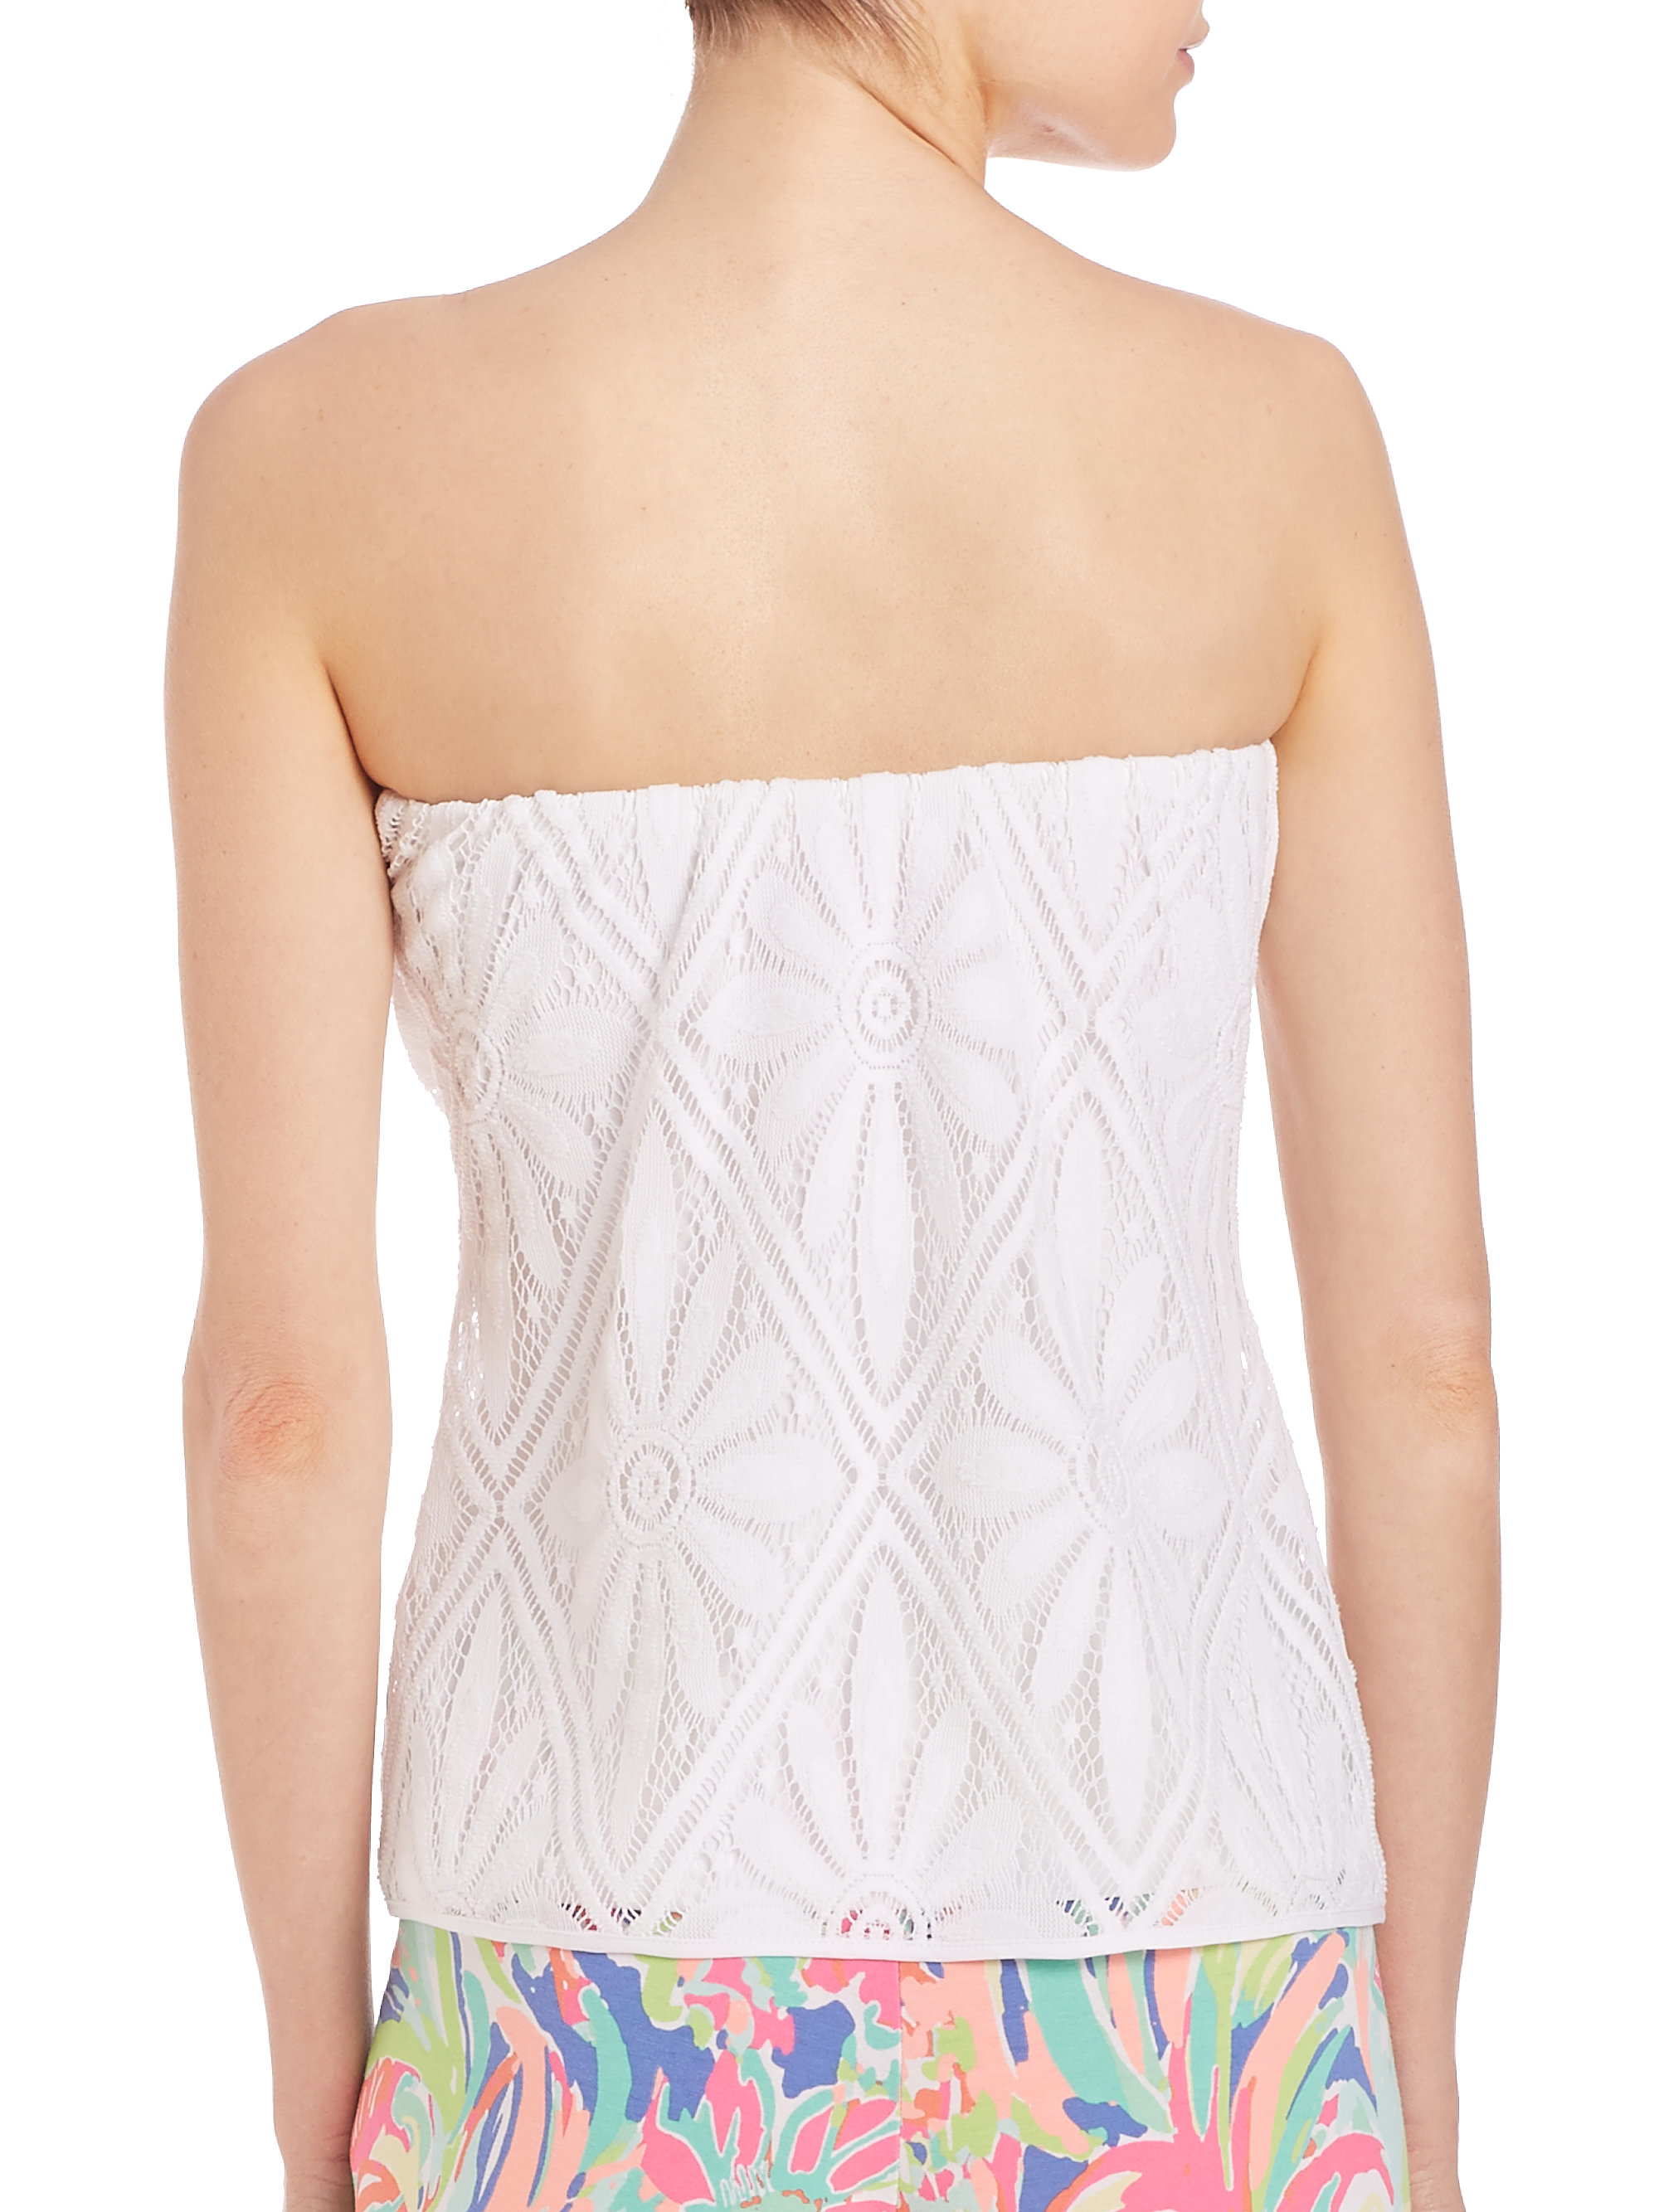 ce3c6583f0e Lyst - Lilly Pulitzer Tyra Tube Top in White